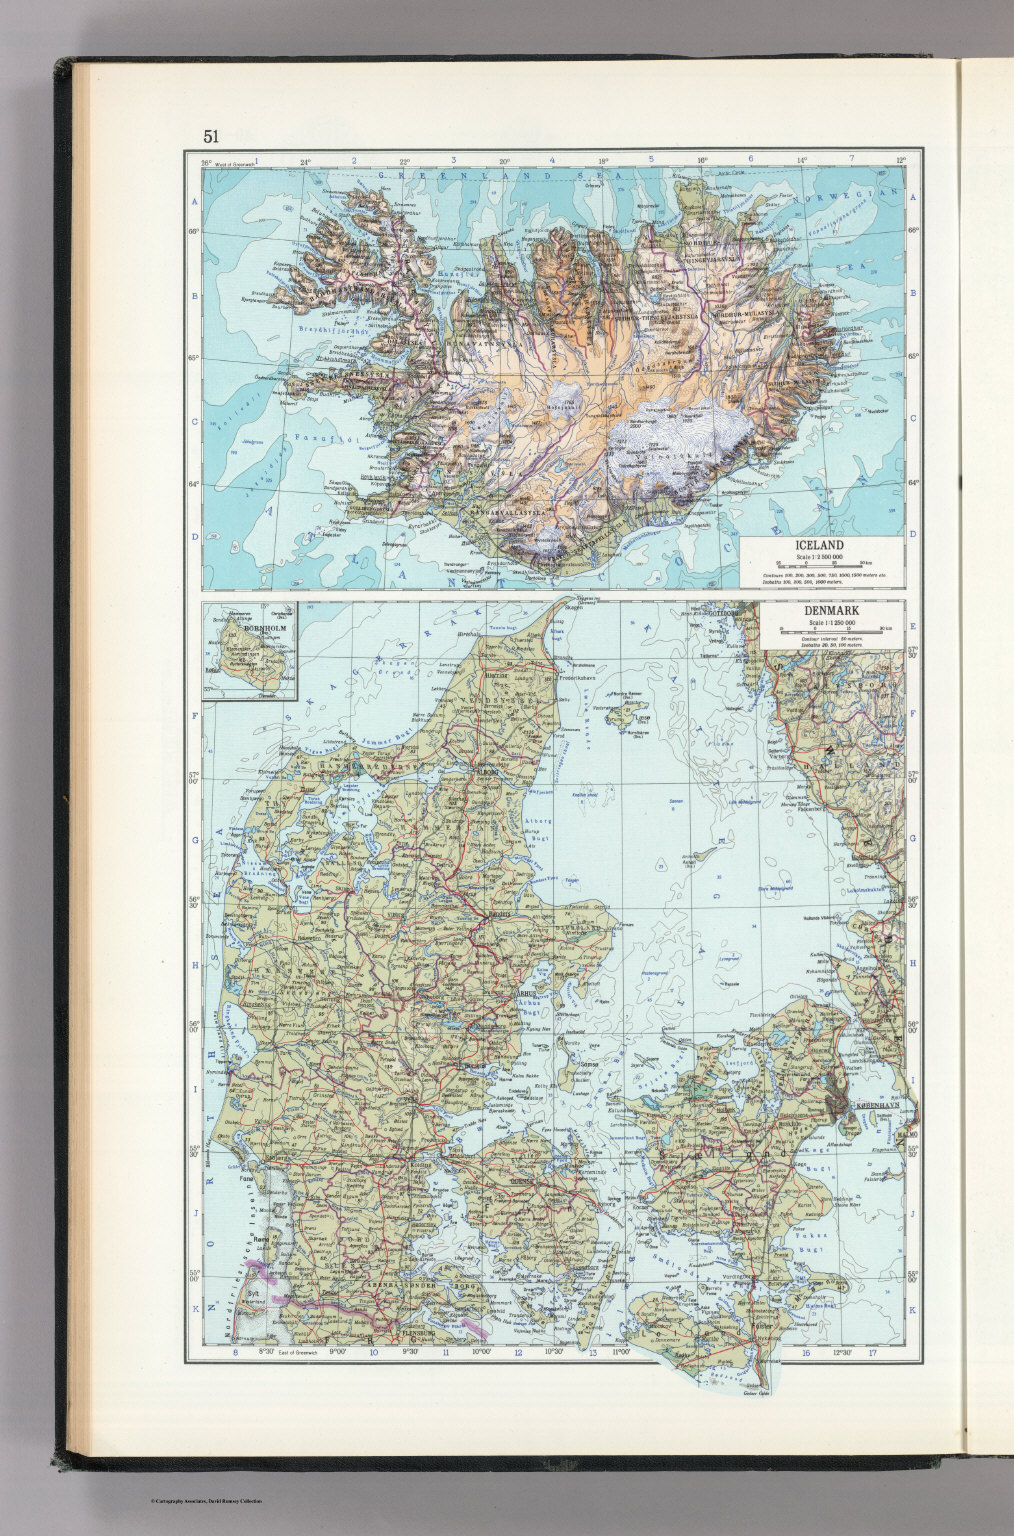 51 iceland denmark the world atlas david rumsey historical map iceland denmark the world atlas gumiabroncs Images